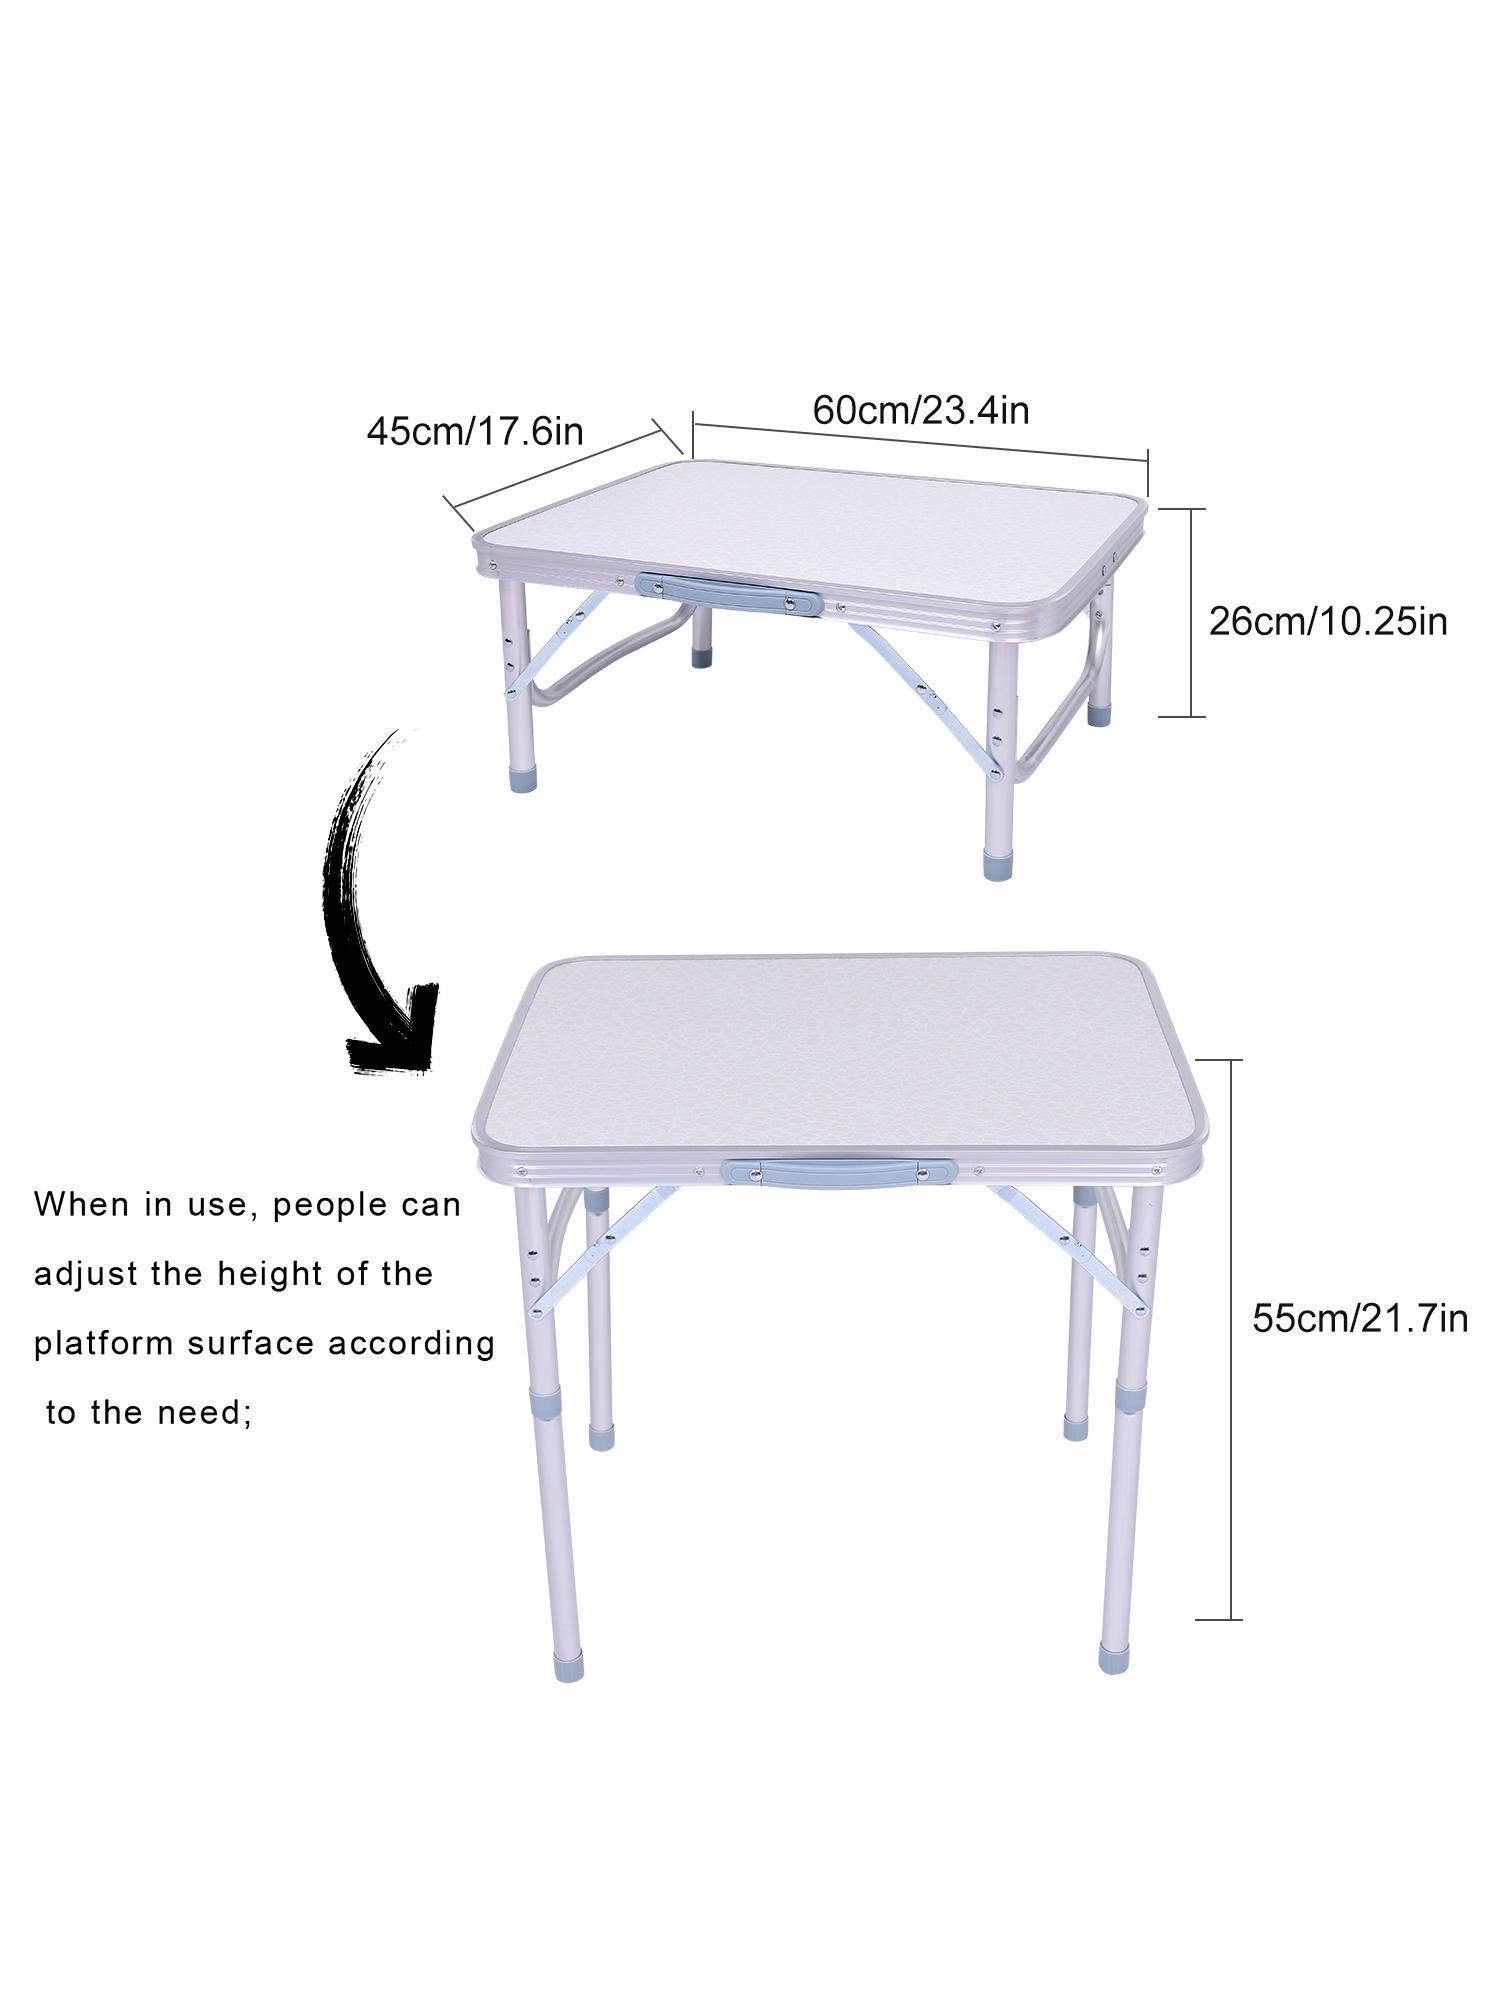 Ultralight Aluminum Portable Folding Camping Table by Generic